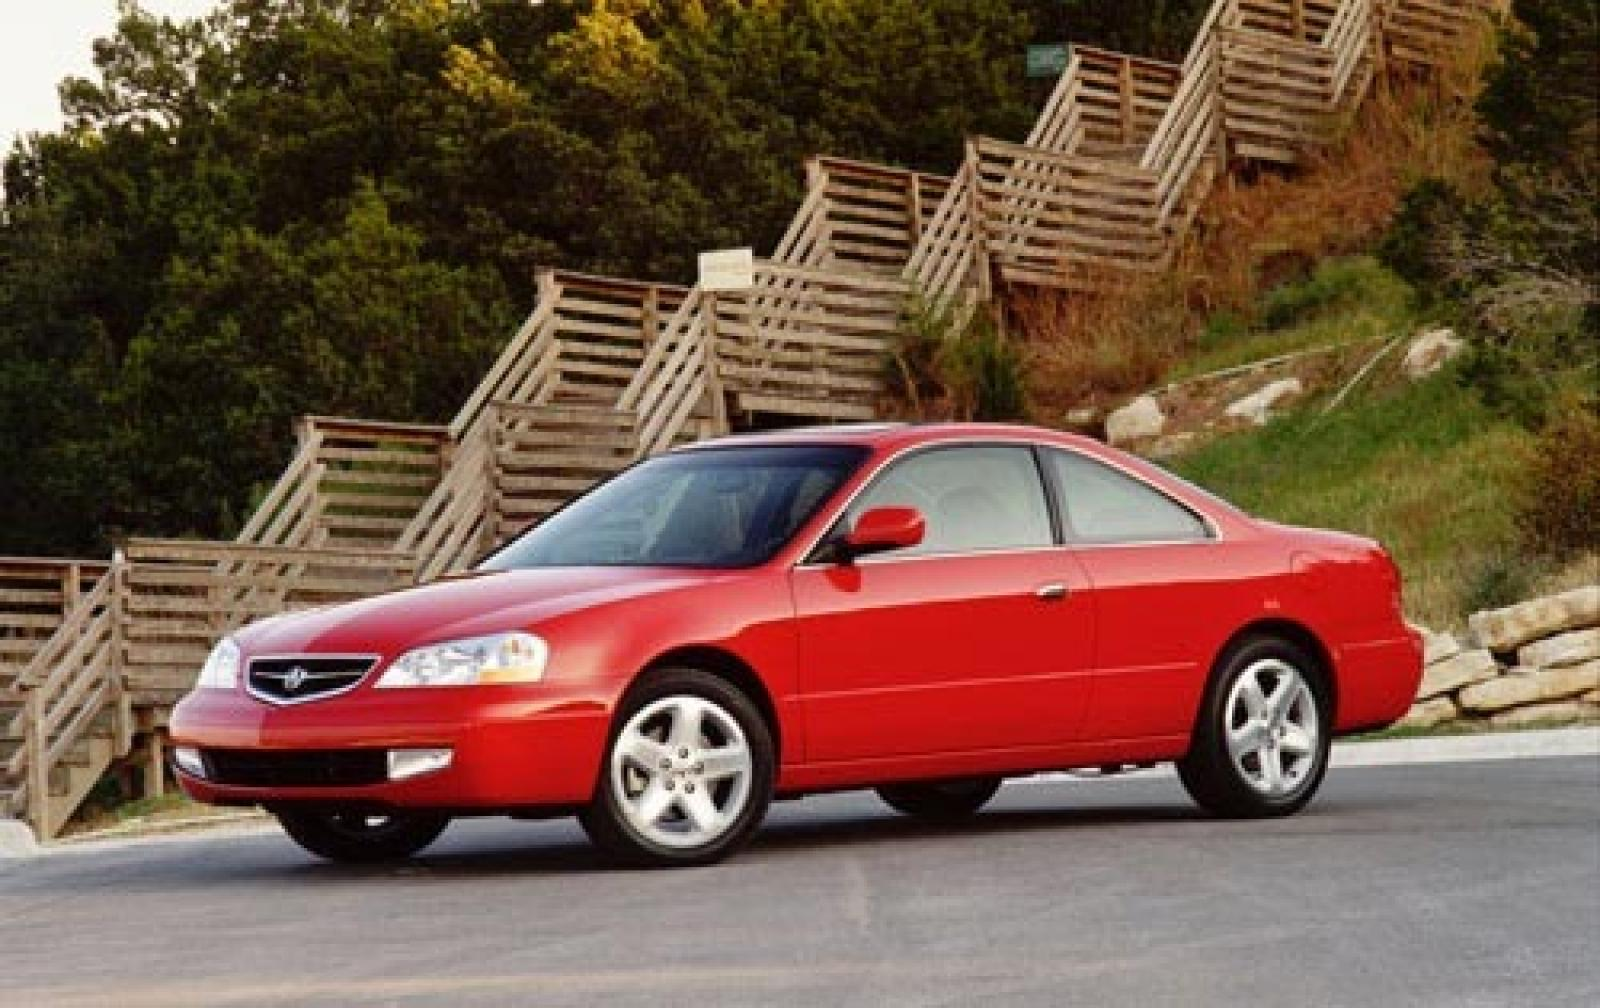 hight resolution of 2002 acura cl 1 800 1024 1280 1600 origin